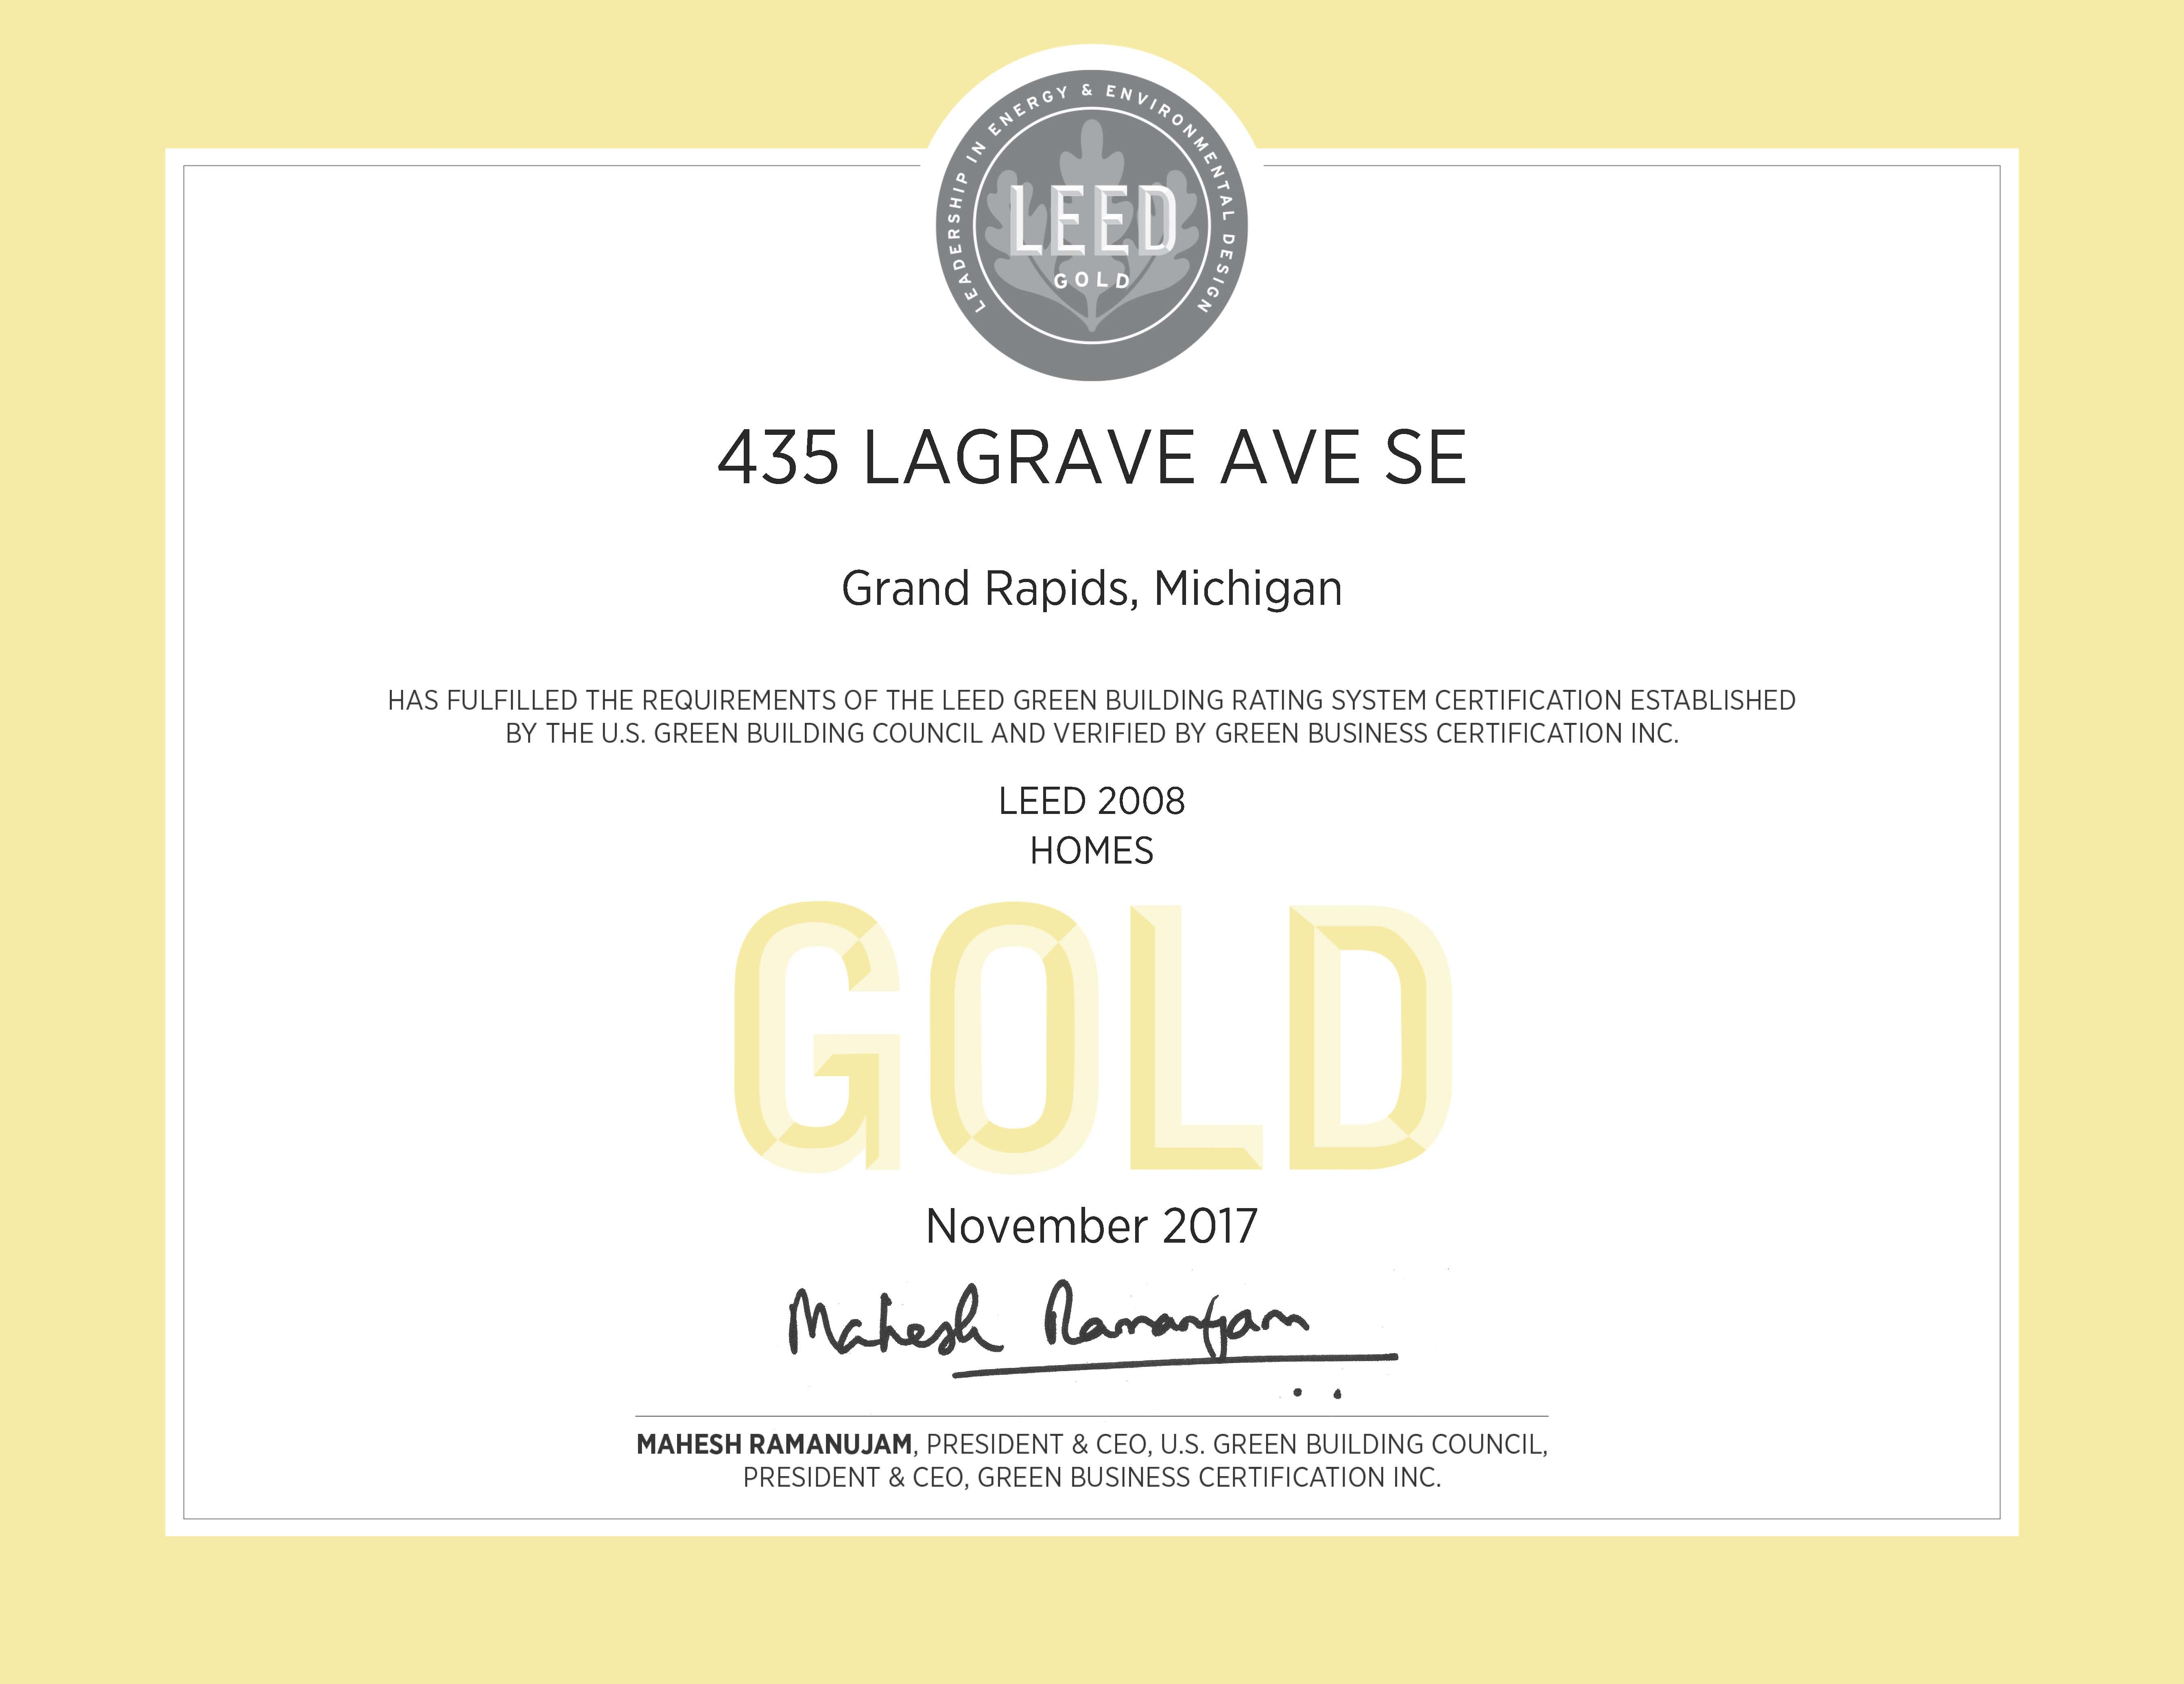 435 lagrave apartments at tapestry square goes leed gold for Leed home certification